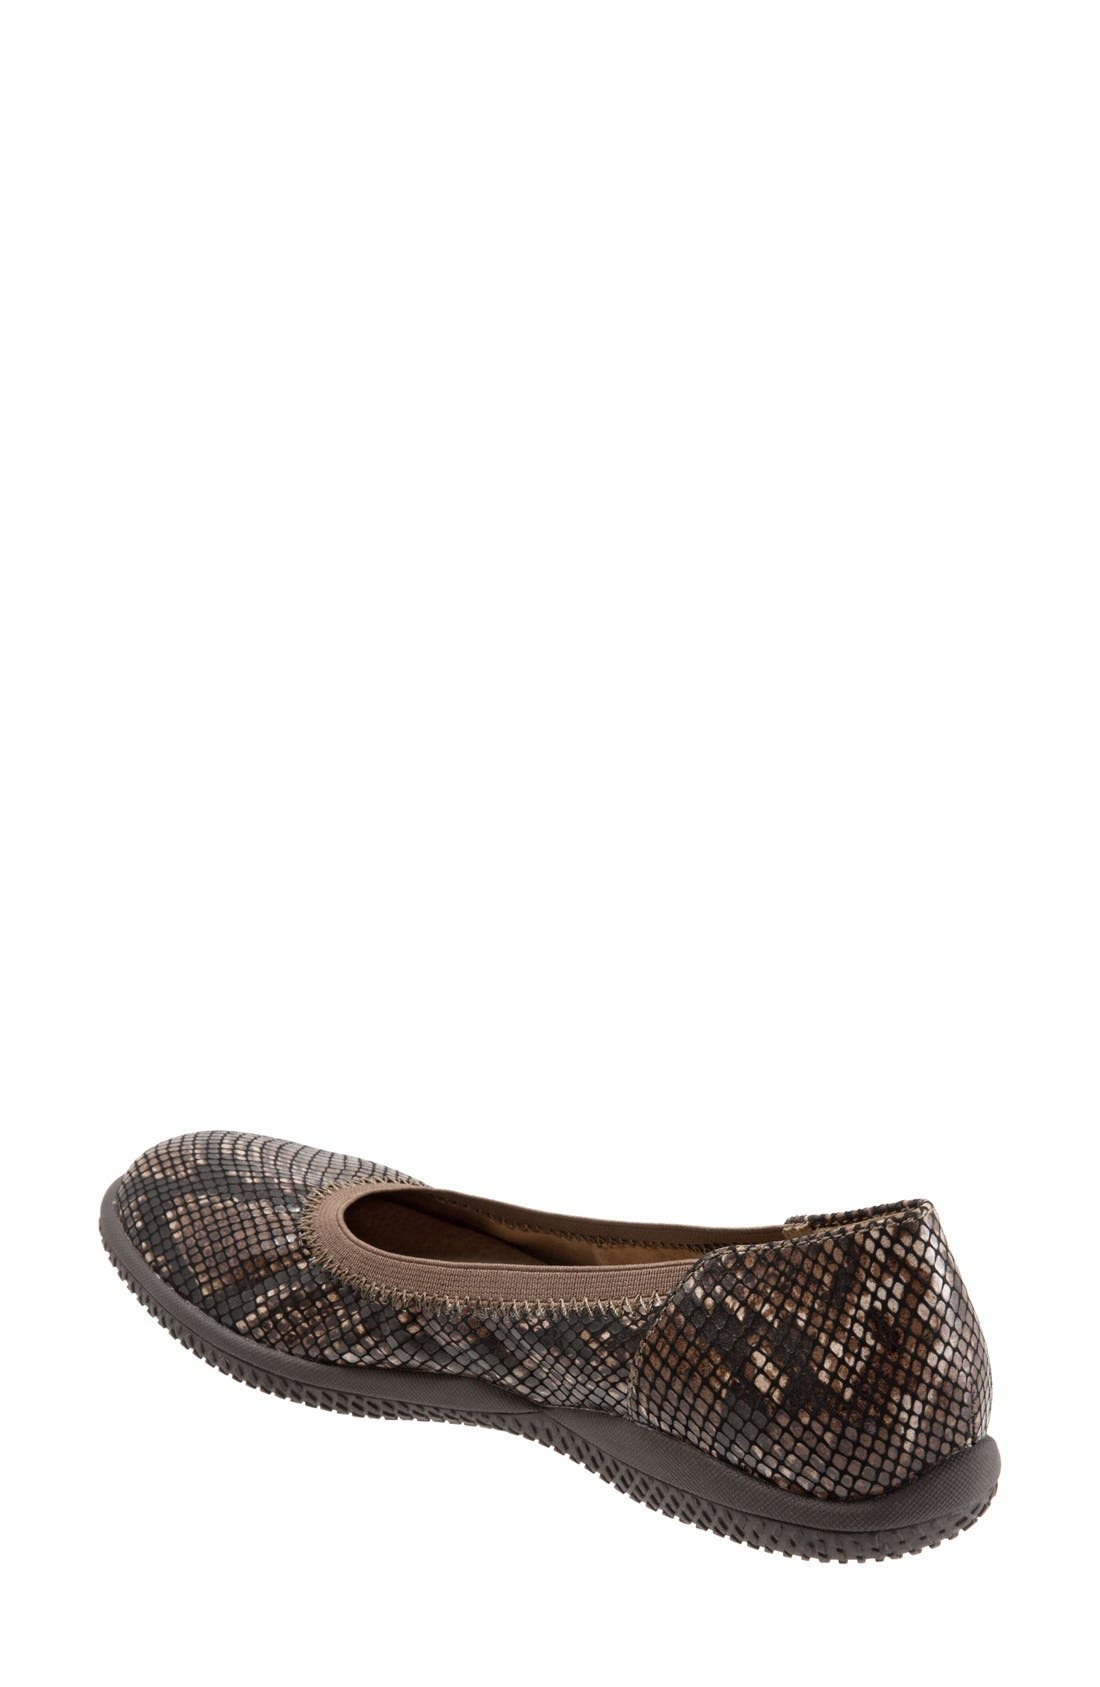 SOFTWALK<SUP>®</SUP>, 'Hampshire' Dot Perforated Ballet Flat, Alternate thumbnail 2, color, BROWN PYTHON PRINT LEATHER